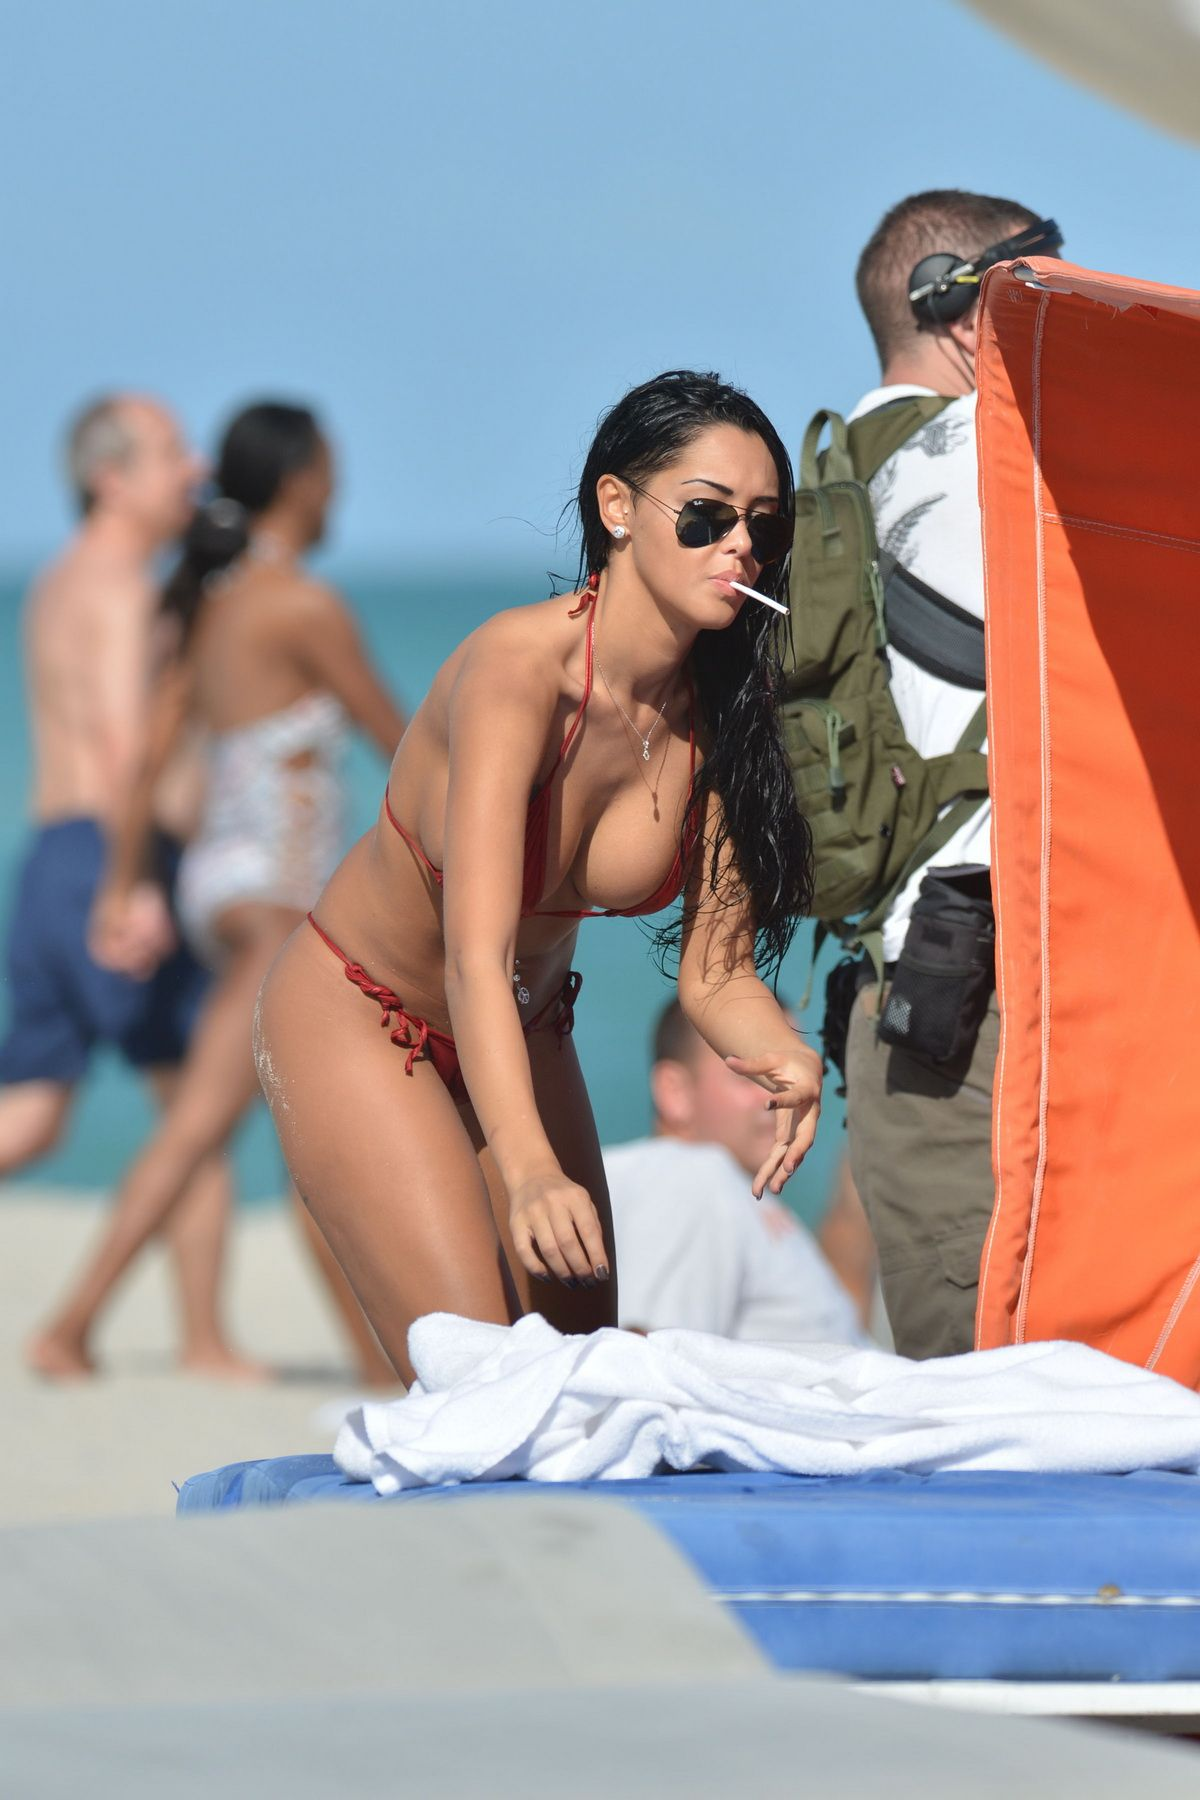 Nabilla Benattia - Seen on the beach filming a dating reality show, Miami  Beach